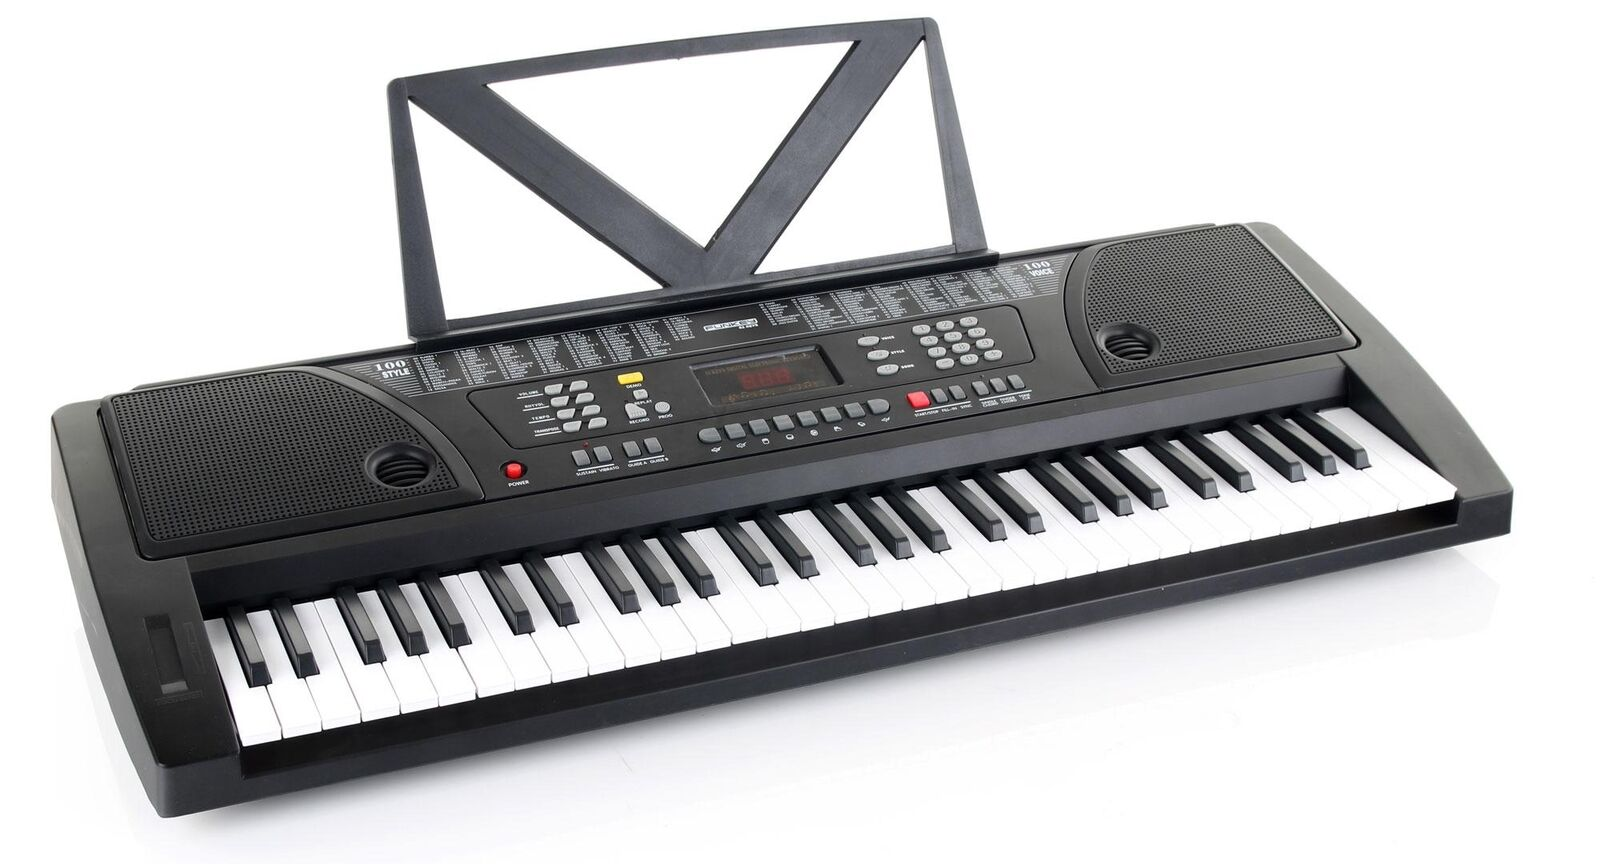 Digitale a 61 tasti Fun Keyboard E-pianoforte Klavier 100 suoni 100 Ritmi Display